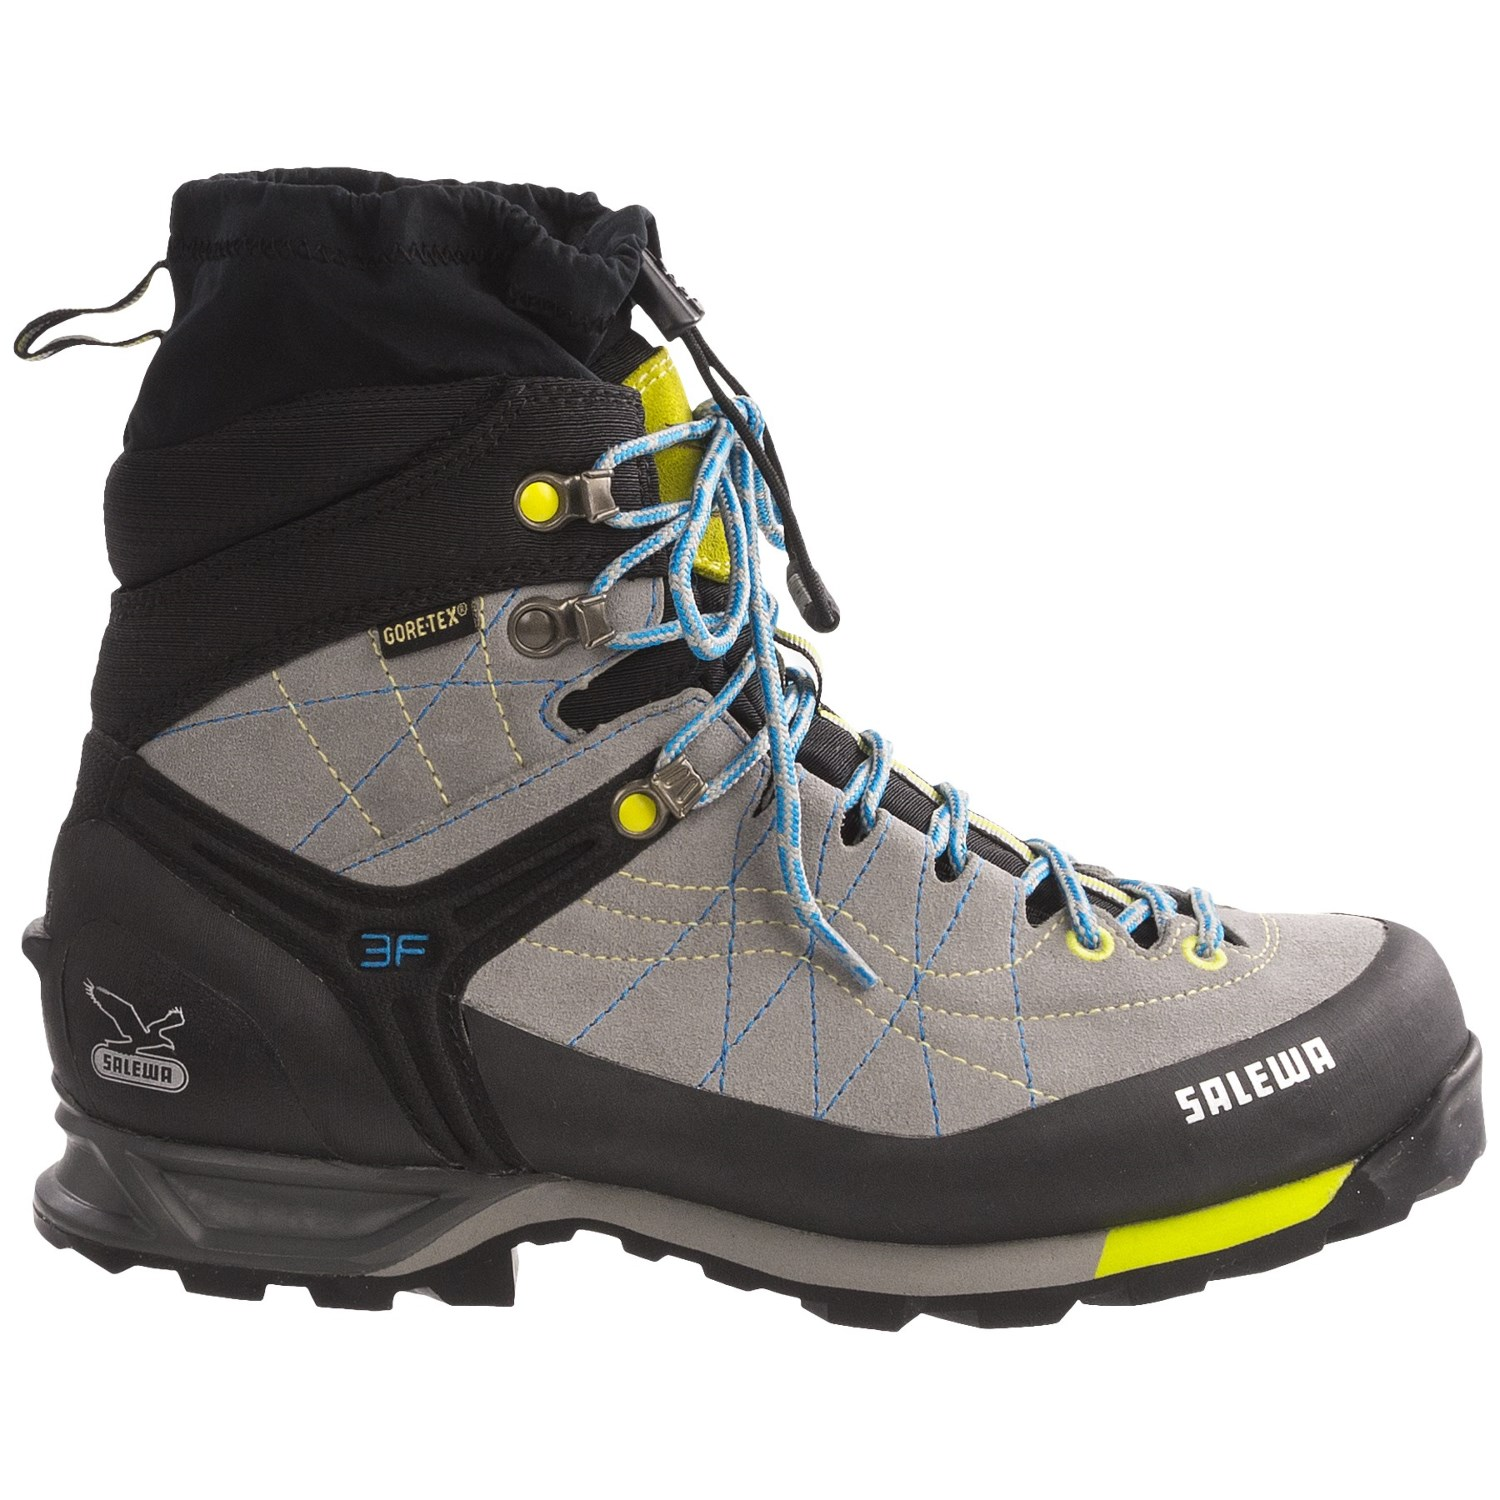 Snow Hiking Boots 6bOnU9yK